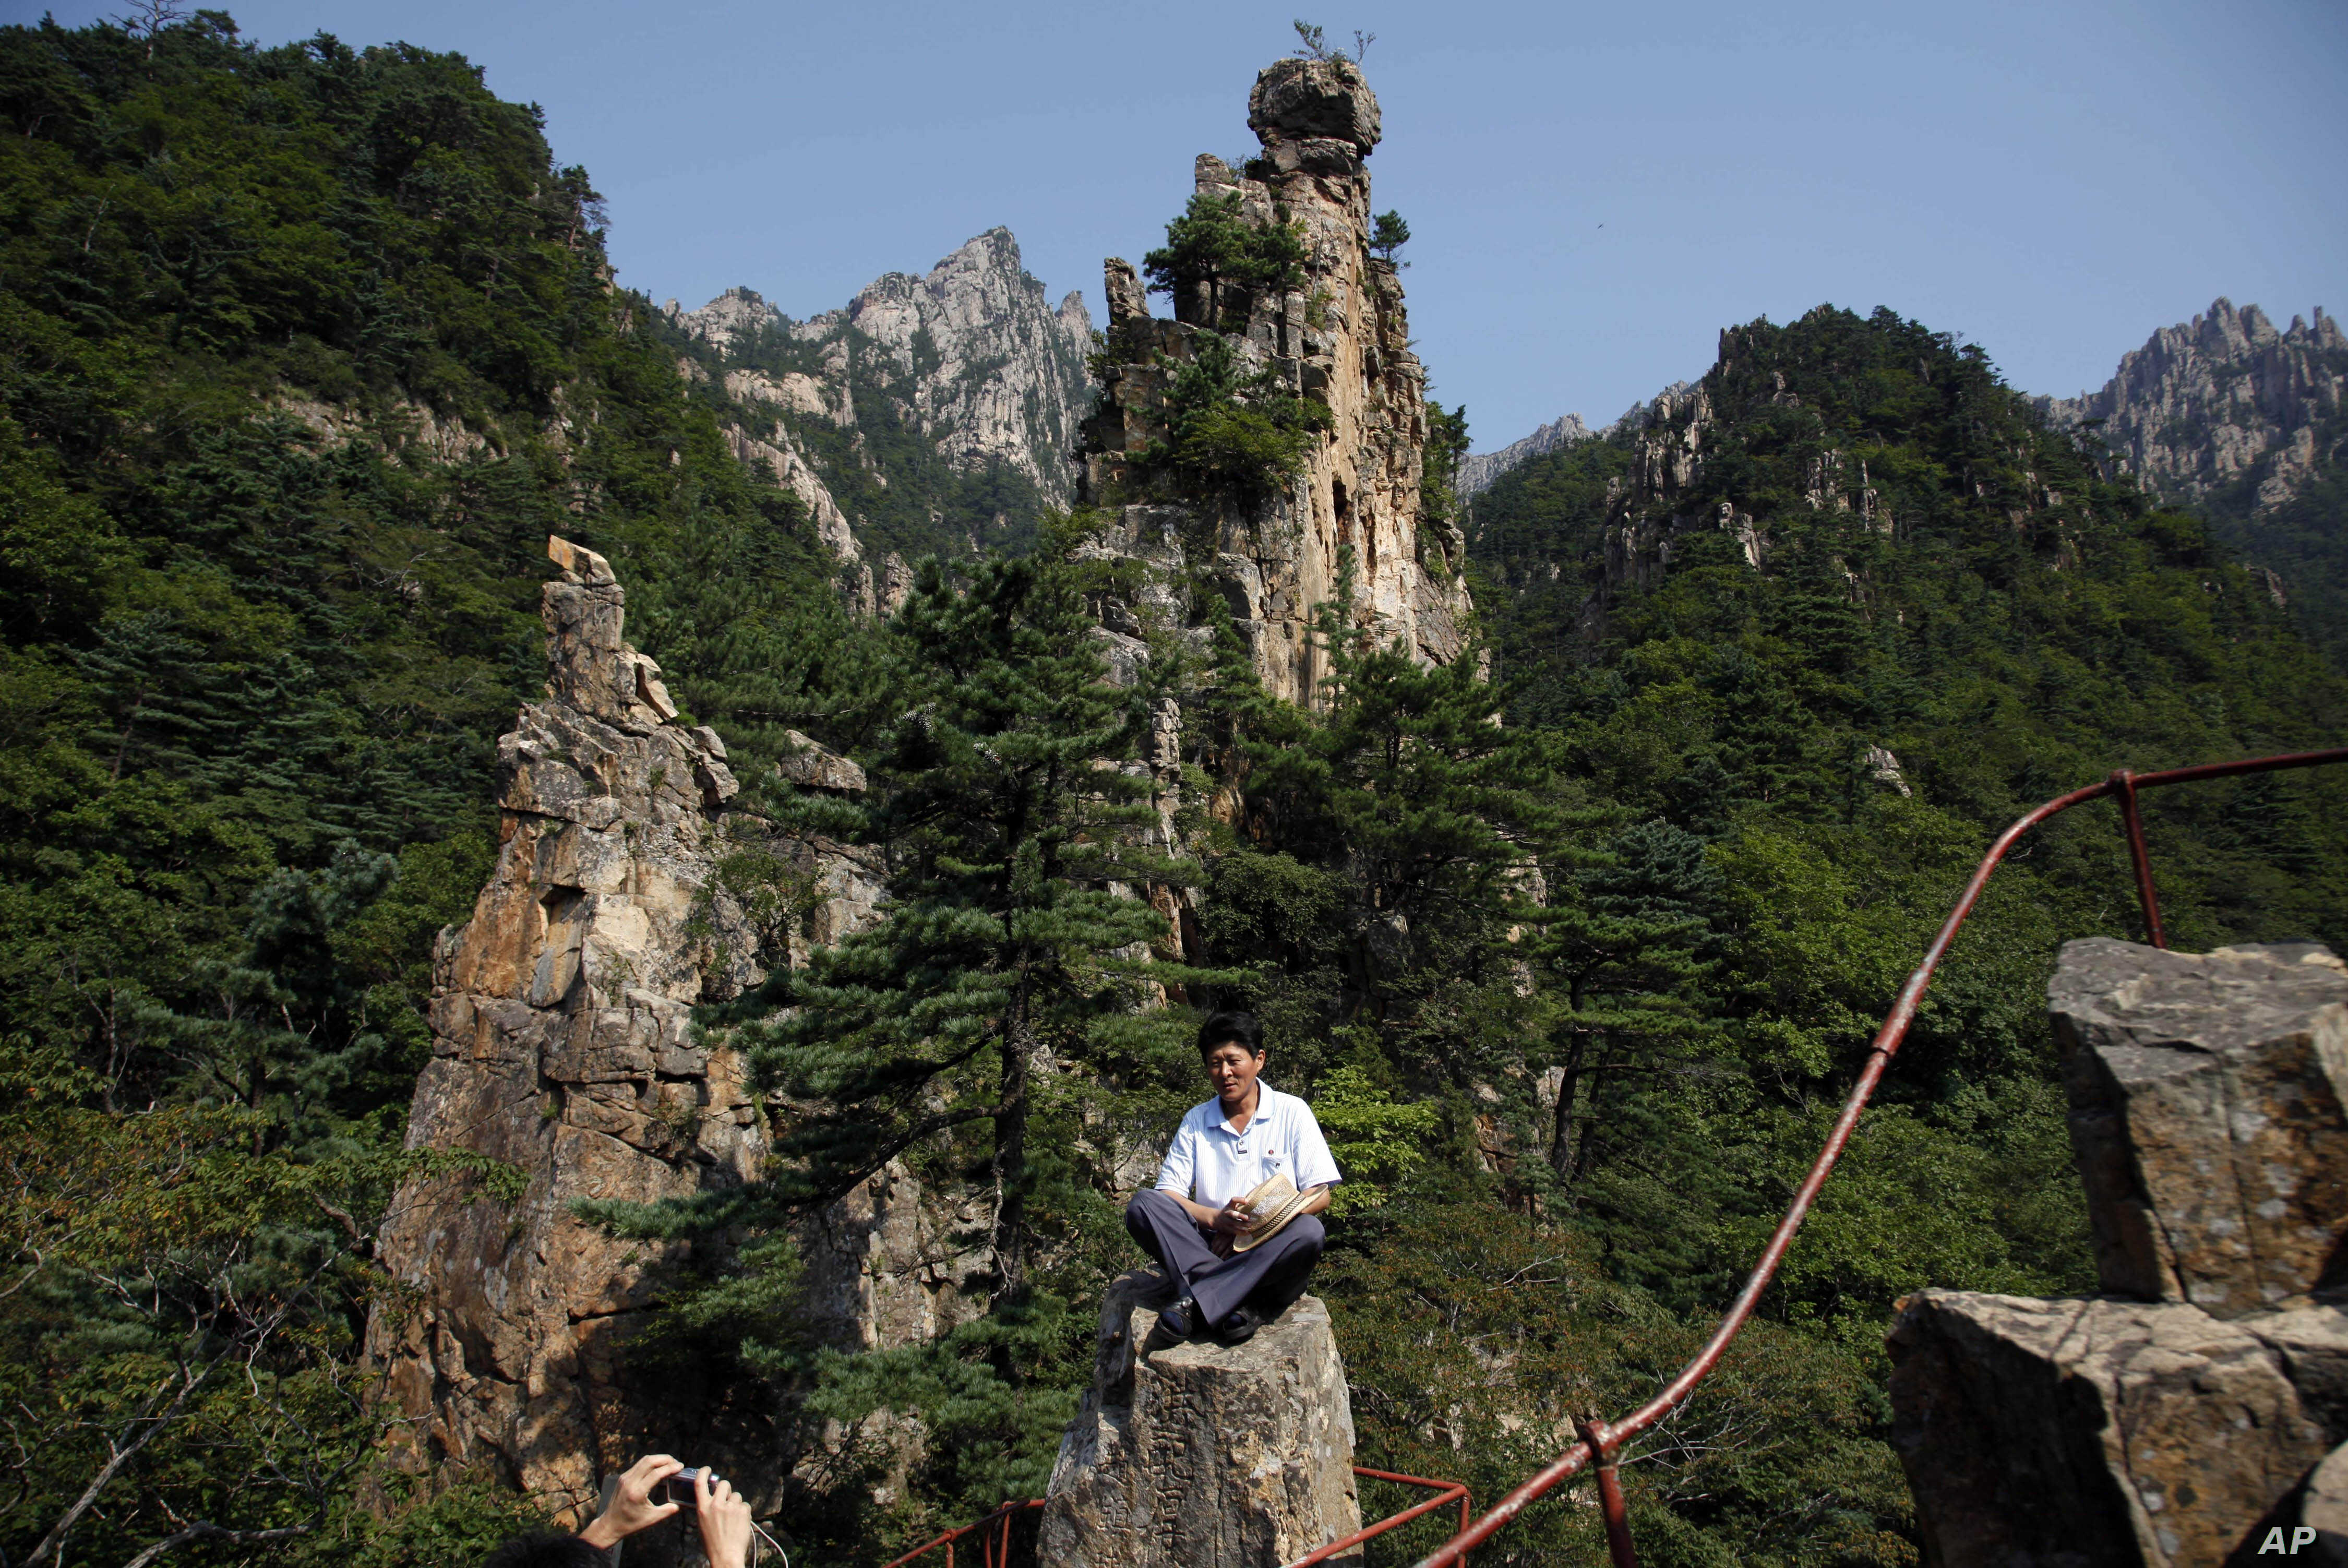 FILE - A North Korean guide poses for photos among the peaks of the Mount Kumgang resort, also known as Diamond Mountain, in North Korea, Sept. 1, 2011. South Korea's Moon Jae-in is look at ways to build relations with North Korea, including resuming...